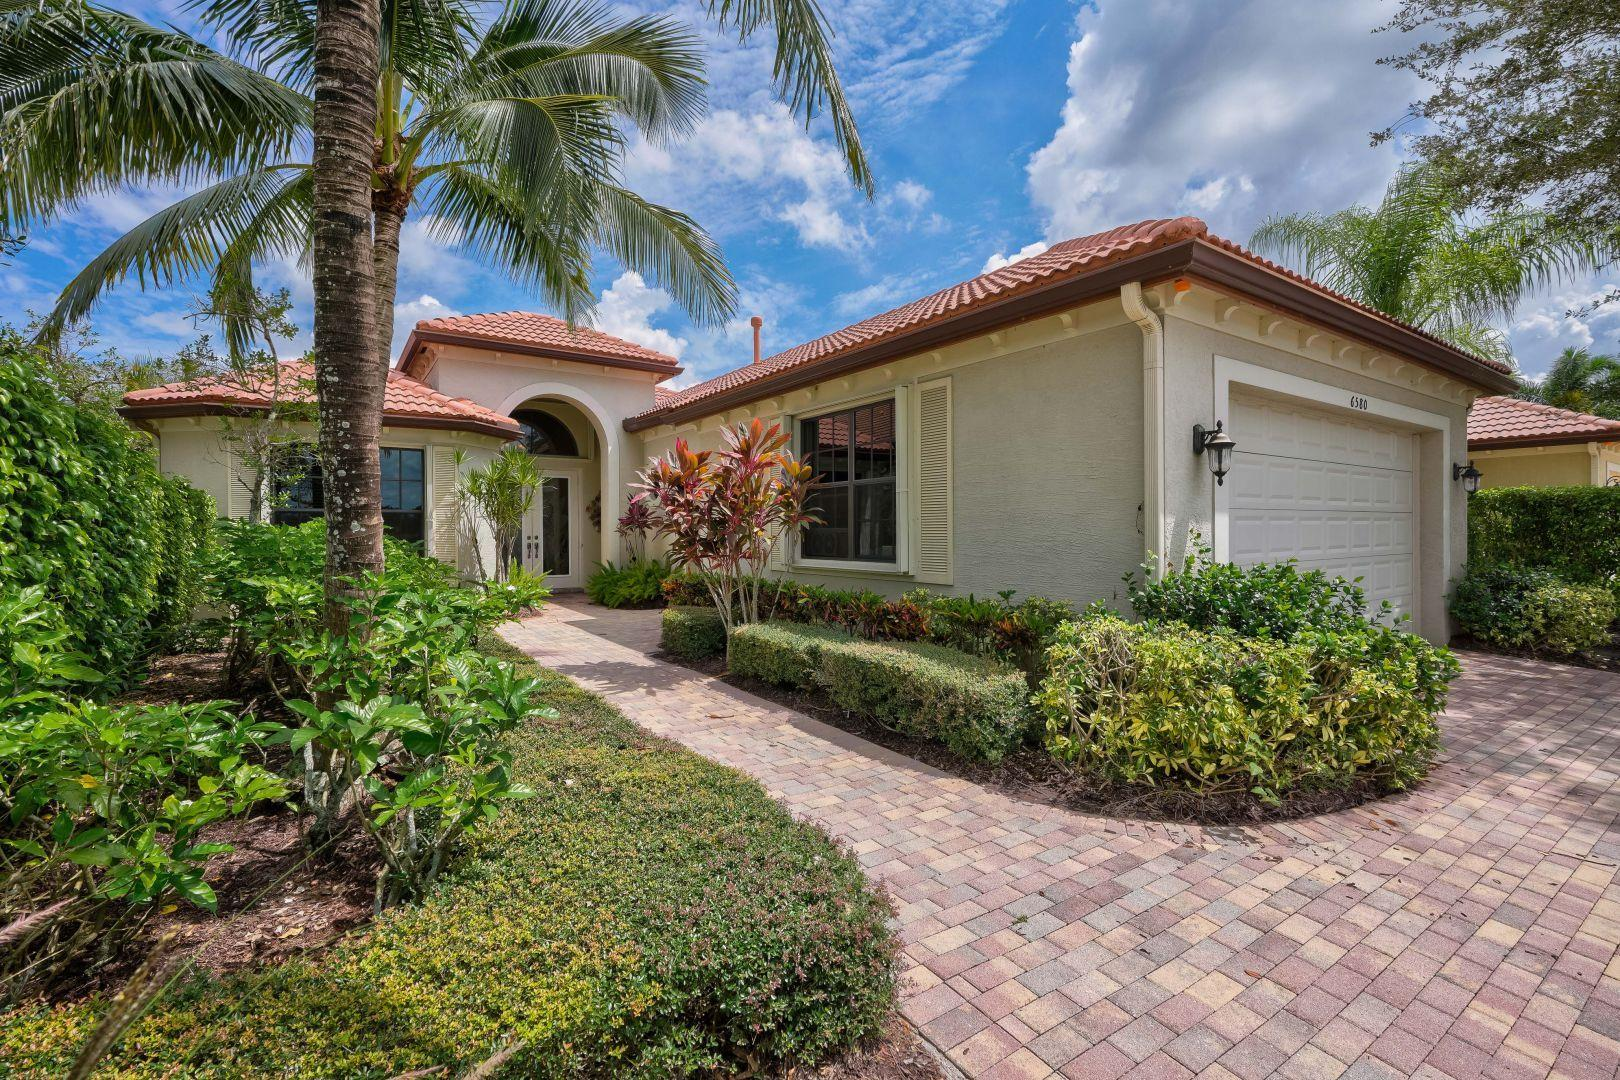 6580 Sparrow Hawk Drive, West Palm Beach, Florida 33412, 3 Bedrooms Bedrooms, ,3.1 BathroomsBathrooms,Single Family,For Sale,IBIS GOLF & CC THE WOODLANDS,Sparrow Hawk,RX-10463870